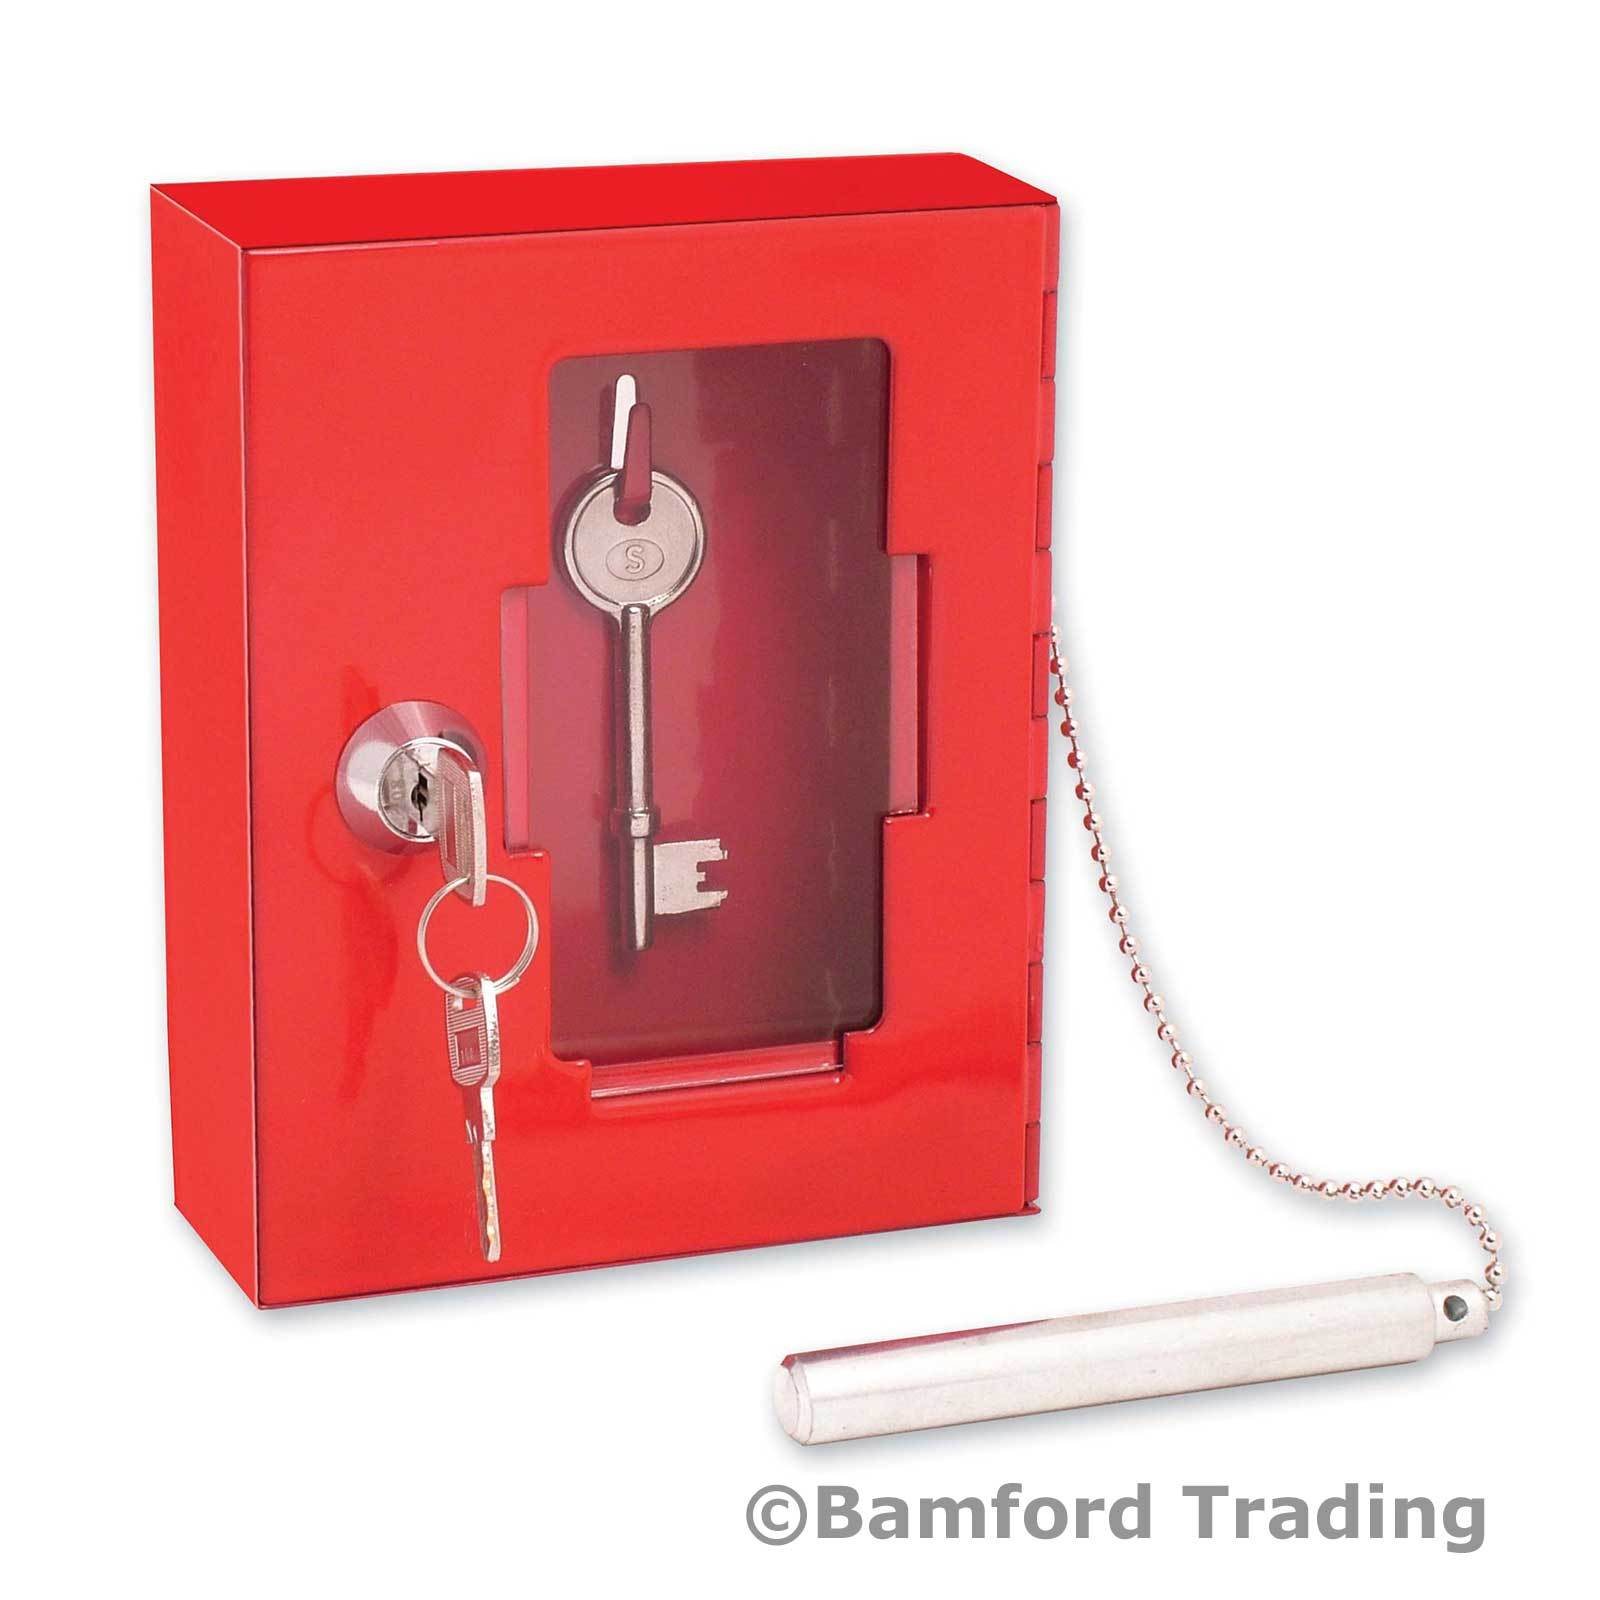 Bedroom Door Emergency Key Sterling Emergency Break Glass Fronted Key Box Case Door